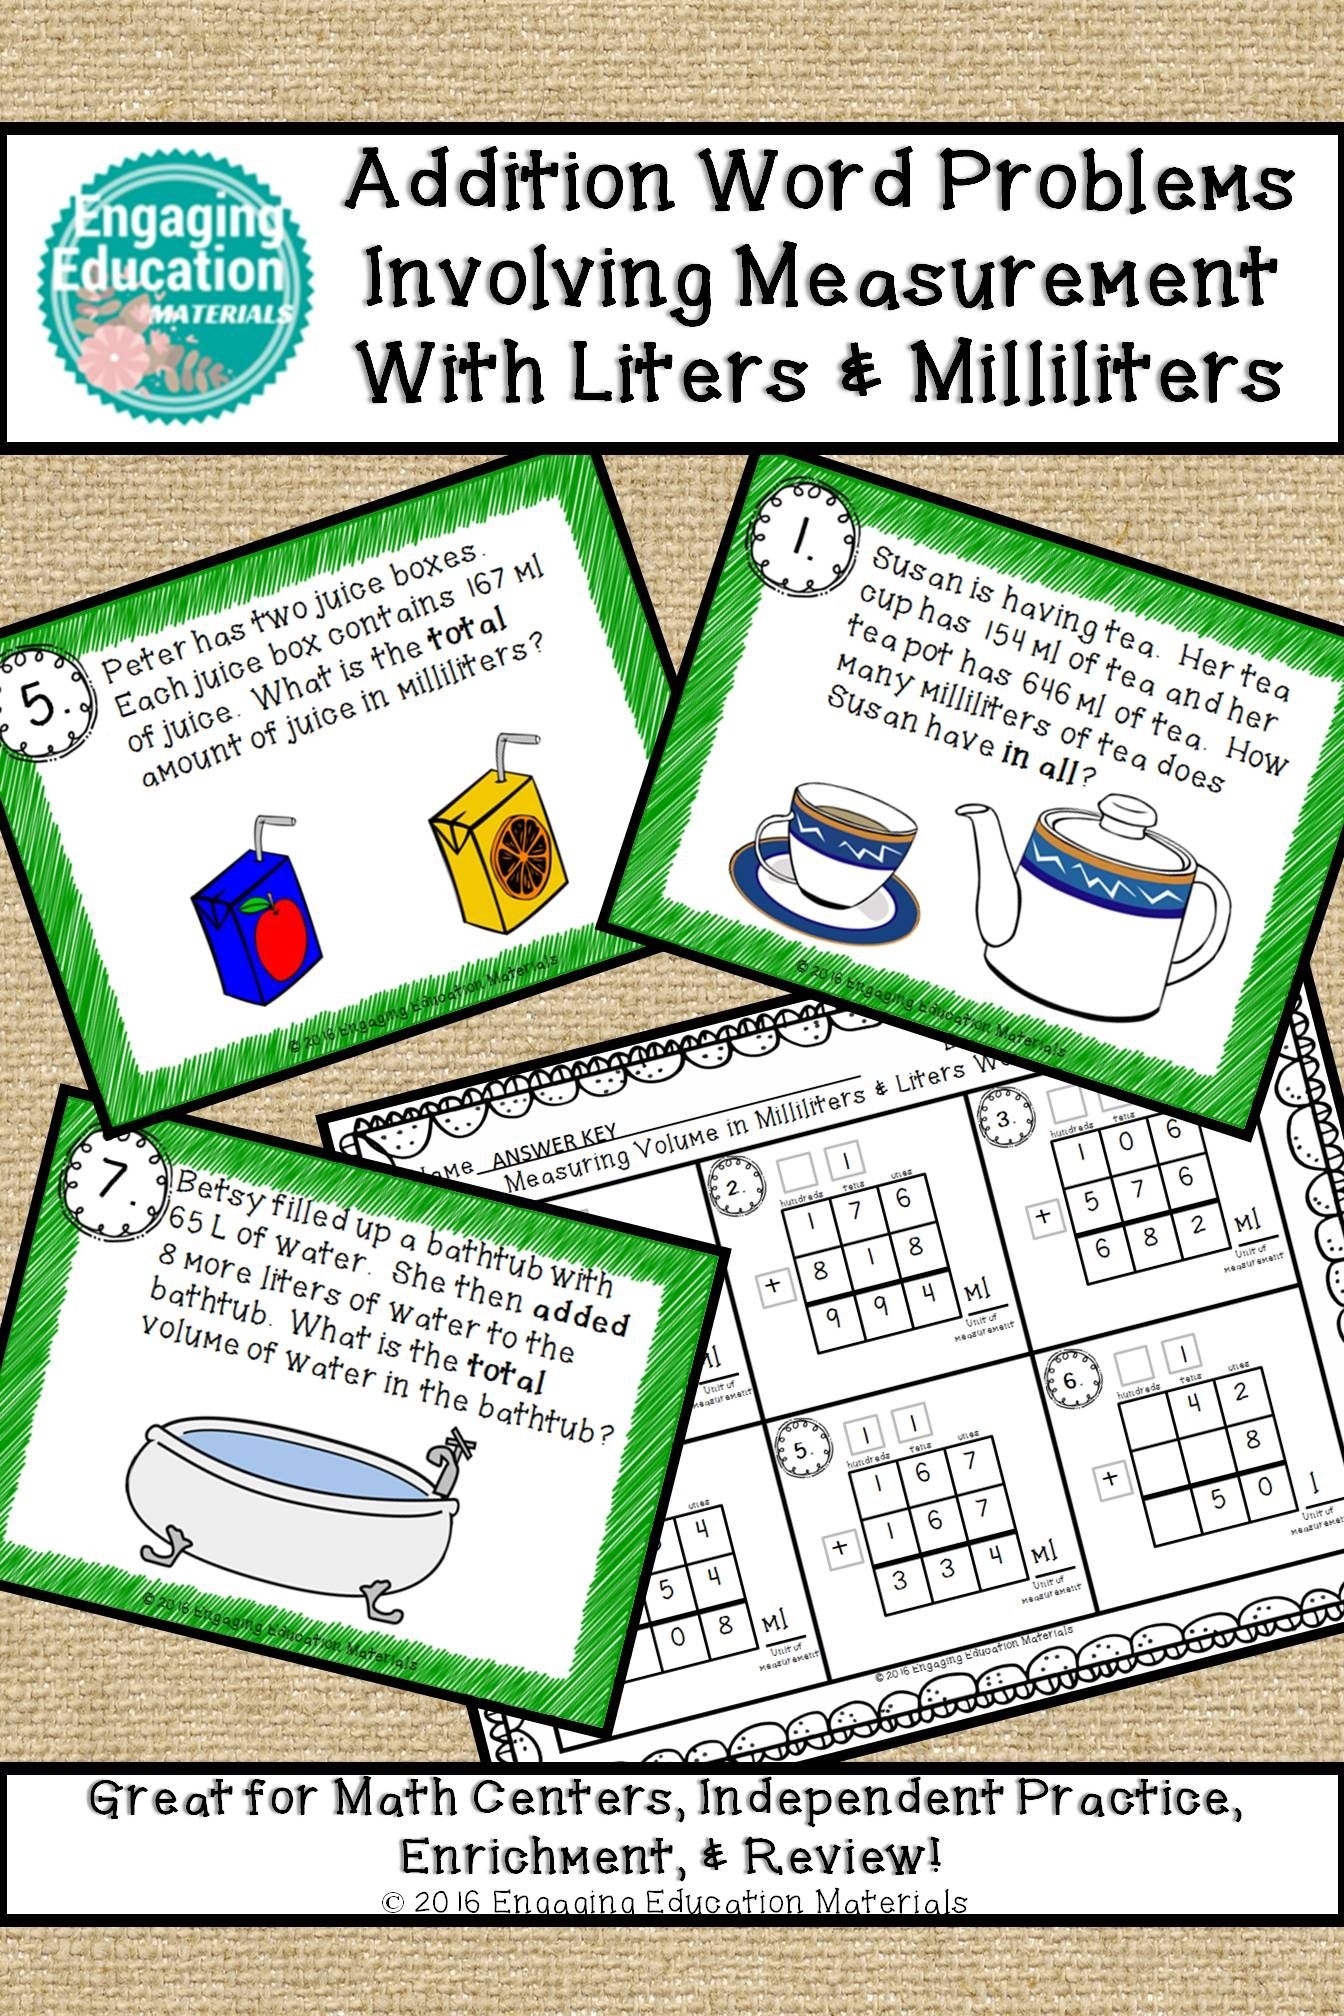 Addition Word Problems Involving Measurement With Liters